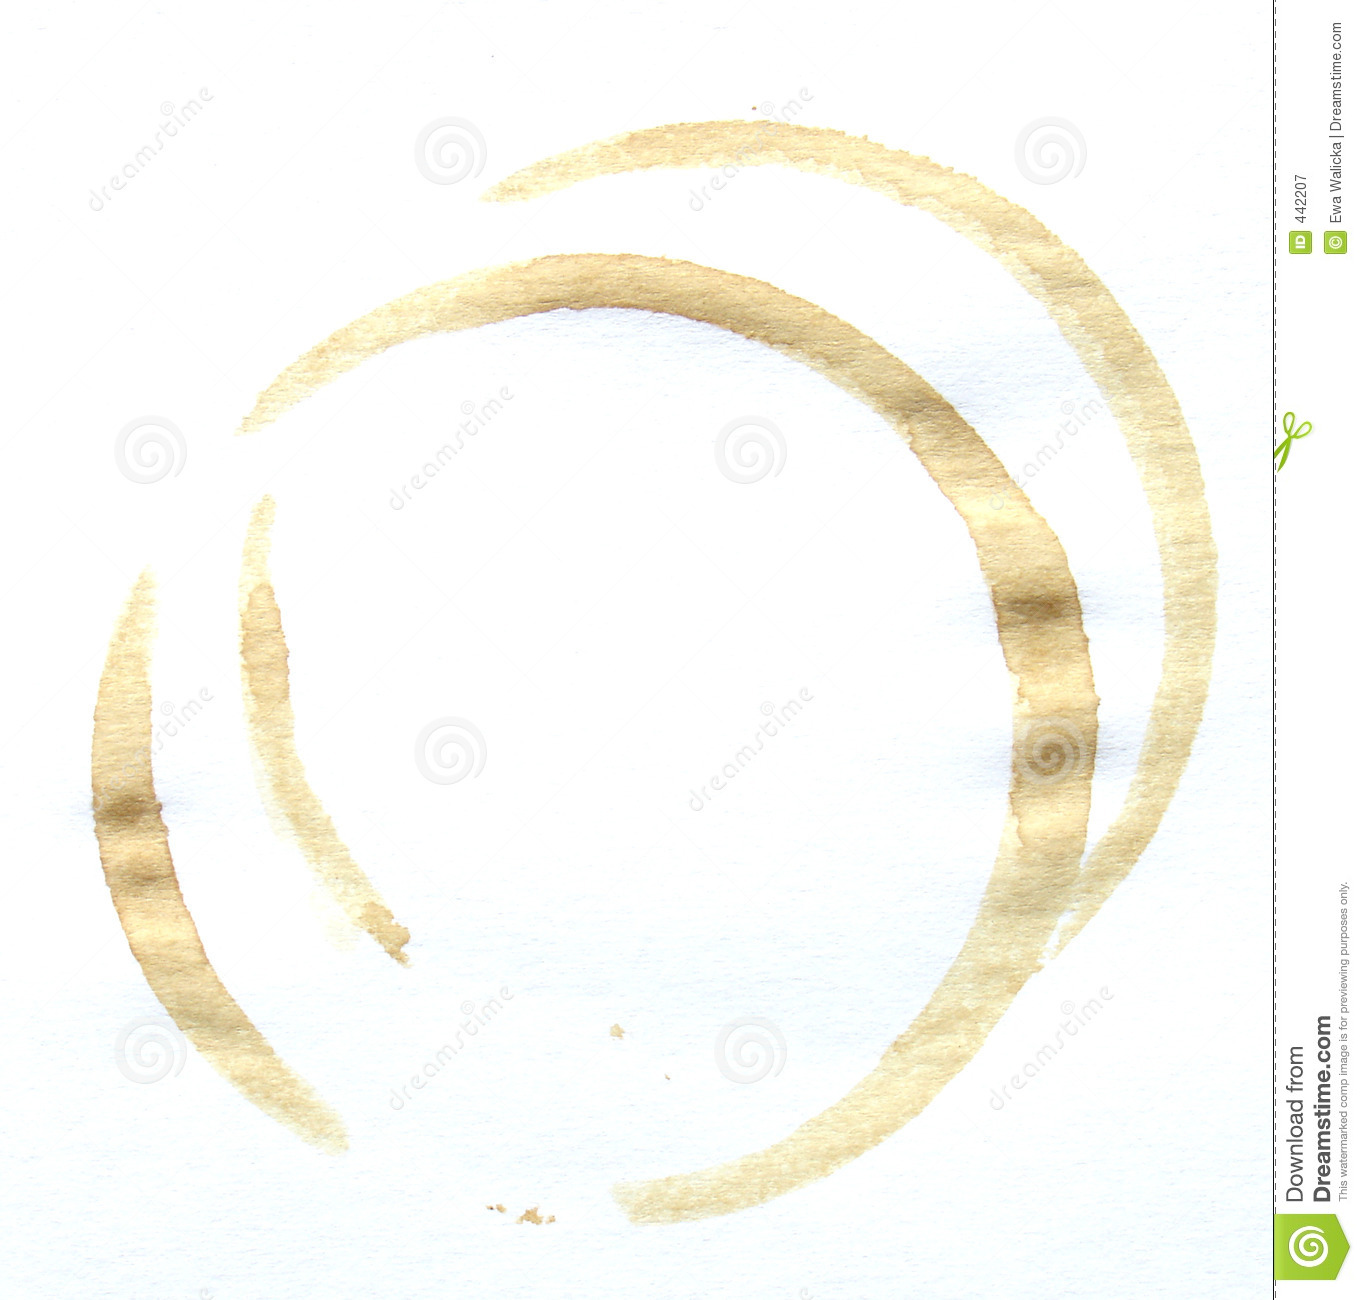 Coffee stain stock image. Image of backdrop, beverage ...